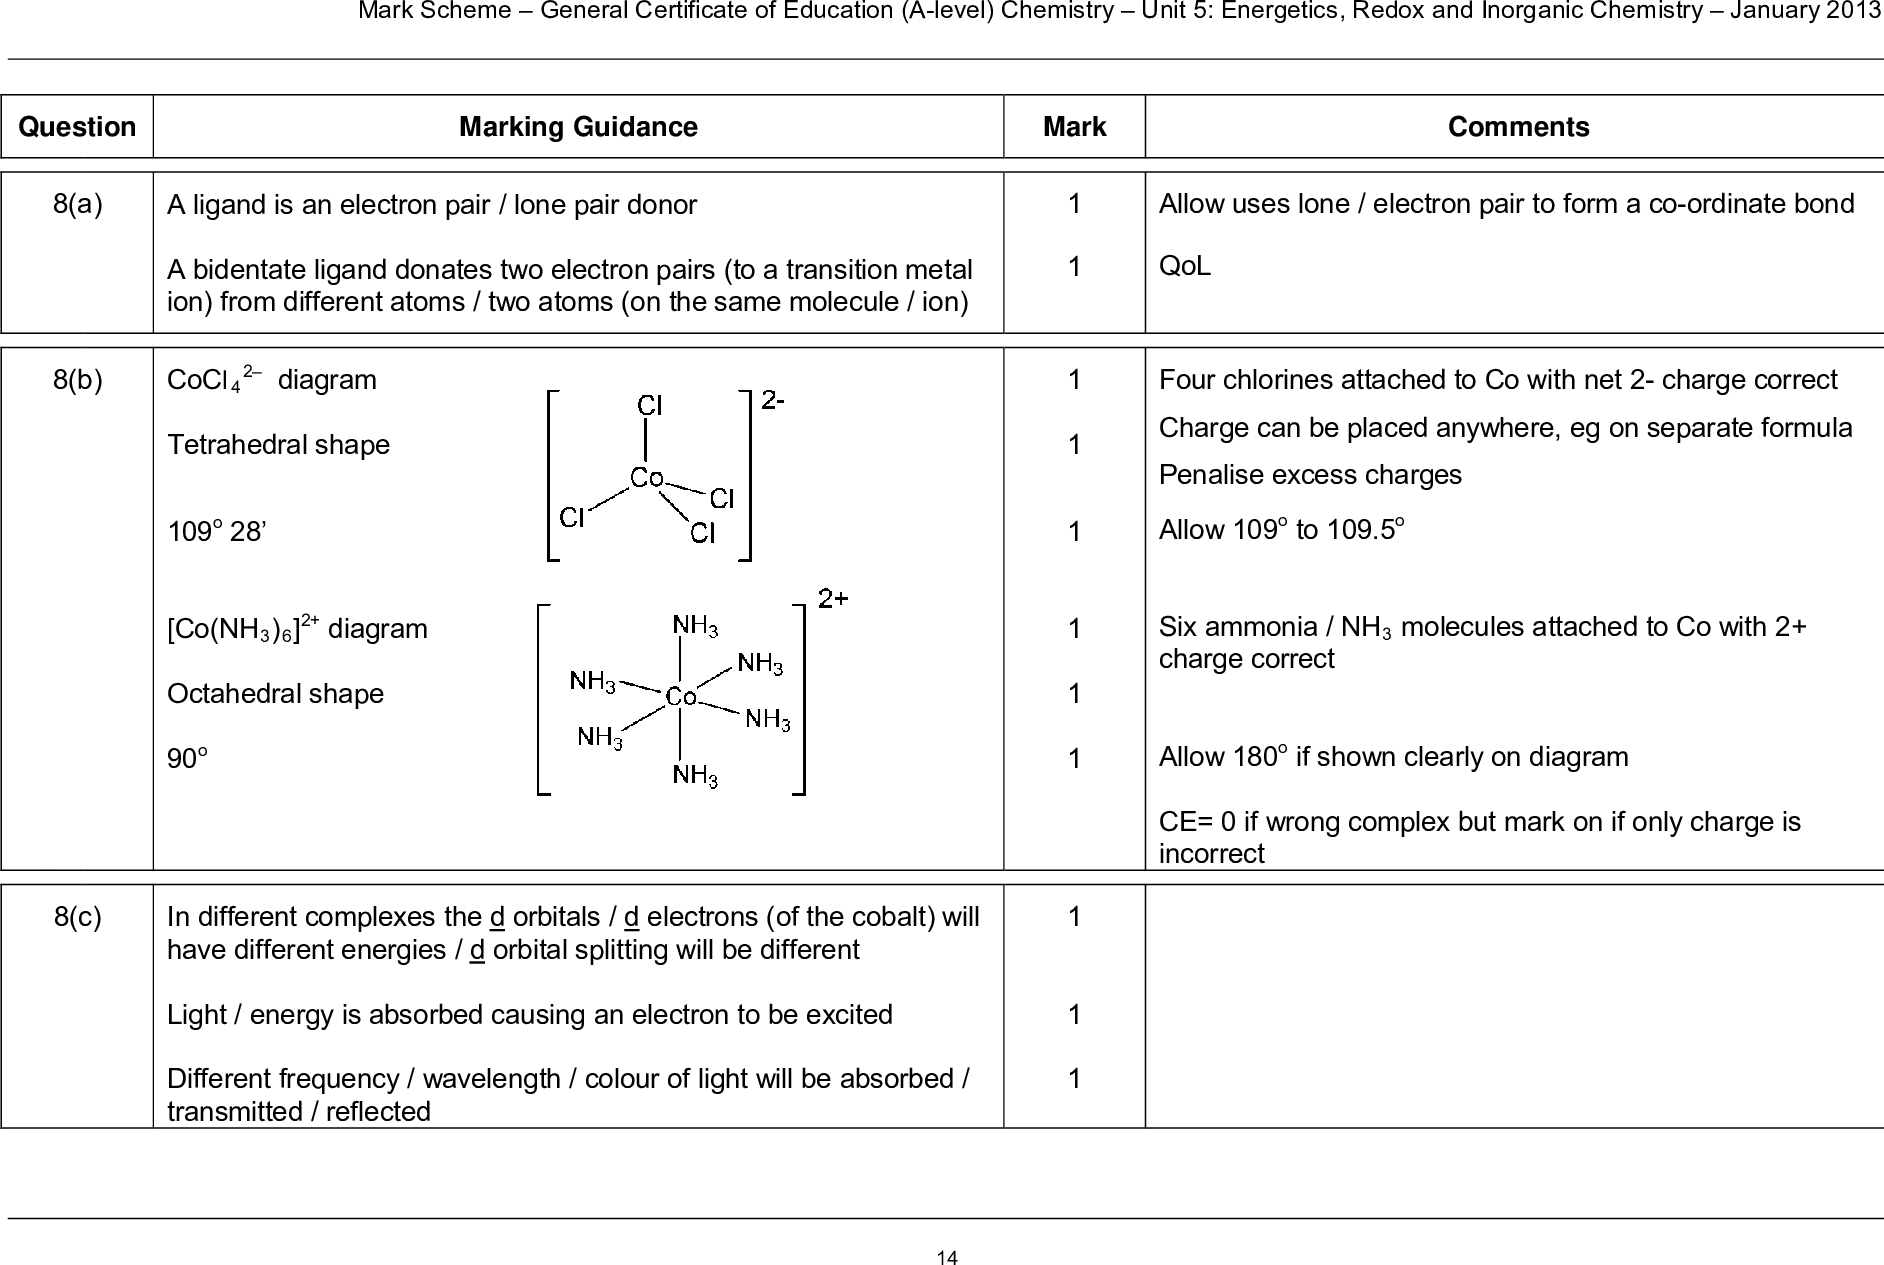 mark scheme general certificate of education a level chemistry unit energetics redox and inorganic chemistry january marking guidance mark comments allow uses lone electron pair to form a co ordinate bond qol four chlorines attached to co with net charge correct charge can be placed anywhere eg on separate formula penalise excess charges allow o to o six ammonia nh molecules attached to co with charge correct allow o if shown clearly on diagram ce if wrong complex but mark on if only charge is incorrect question a b diagram a ligand is an electron pair lone pair donor a bidentate ligand donates two electron pairs to a transition metal ion from different atoms two atoms on the same molecule ion cocl tetrahedral shape o co nh diagram octahedral shape o c in different complexes the d orbitals d electrons of the cobalt will have different energies d orbital splitting will be different light energy is absorbed causing an electron to be excited different frequency wavelength colour of light will be absorbed transmitted reflected mark scheme general certificate of education a level chemistry unit energetics redox and inorganic chemistry january d mol of h o oxidises mol of co mr coso h o moles co moles h o volume h o moles concentration cm x dm or h o co oh co if mr wrong max for m m m m is method mark for m also scores m units essential for answer m is method mark for m x allow to cm if no ratio or ratio incorrect max for m m m note answer of cm scores for m m m and any other wrong ratio max answer of cm scores for m m m and any other wrong mr max answer of cm scores for m only so wrong mr and wrong ratio max